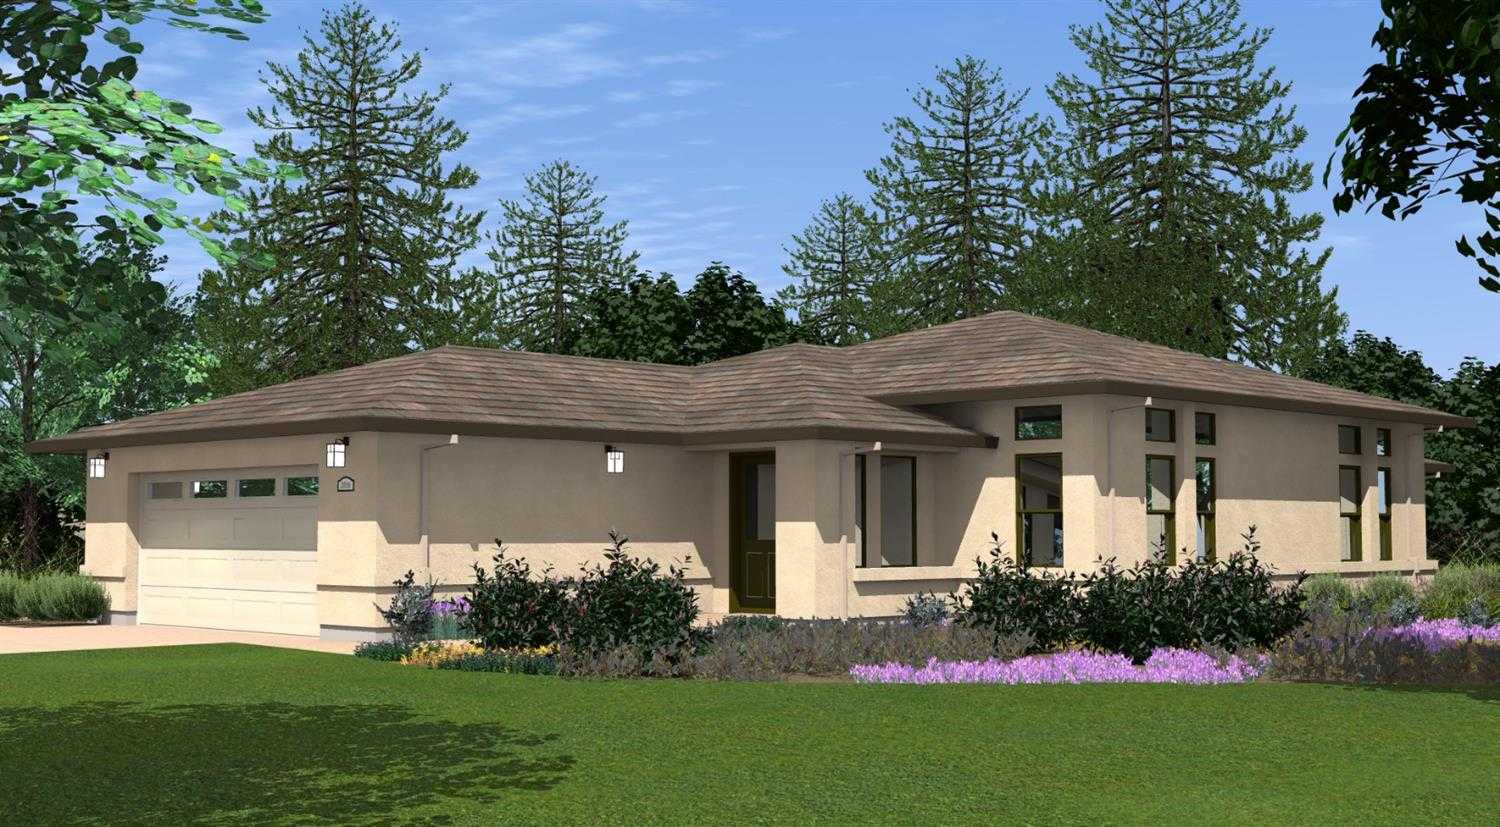 $440,300 - 3Br/2Ba -  for Sale in Jackson View, Jackson